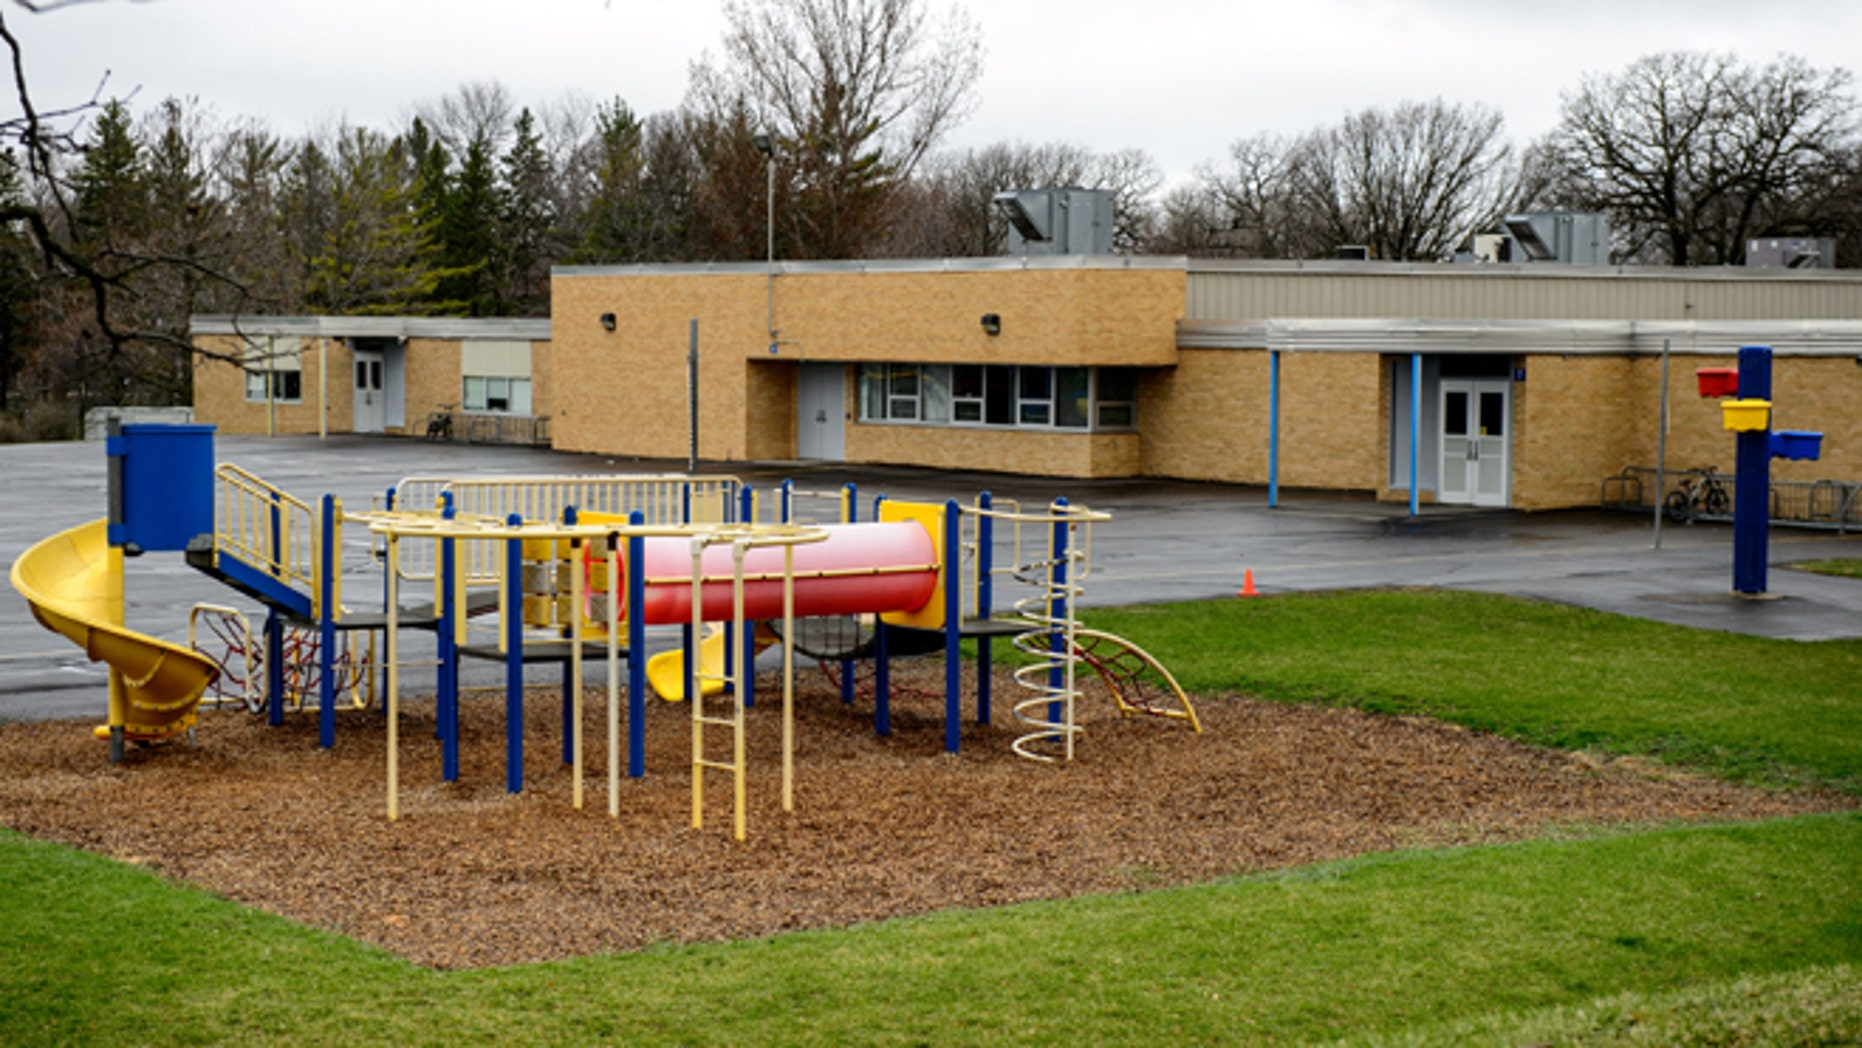 May 1, 2014: Bombs were allegedly found in March at Hartley Elementery School playground in Waseca.